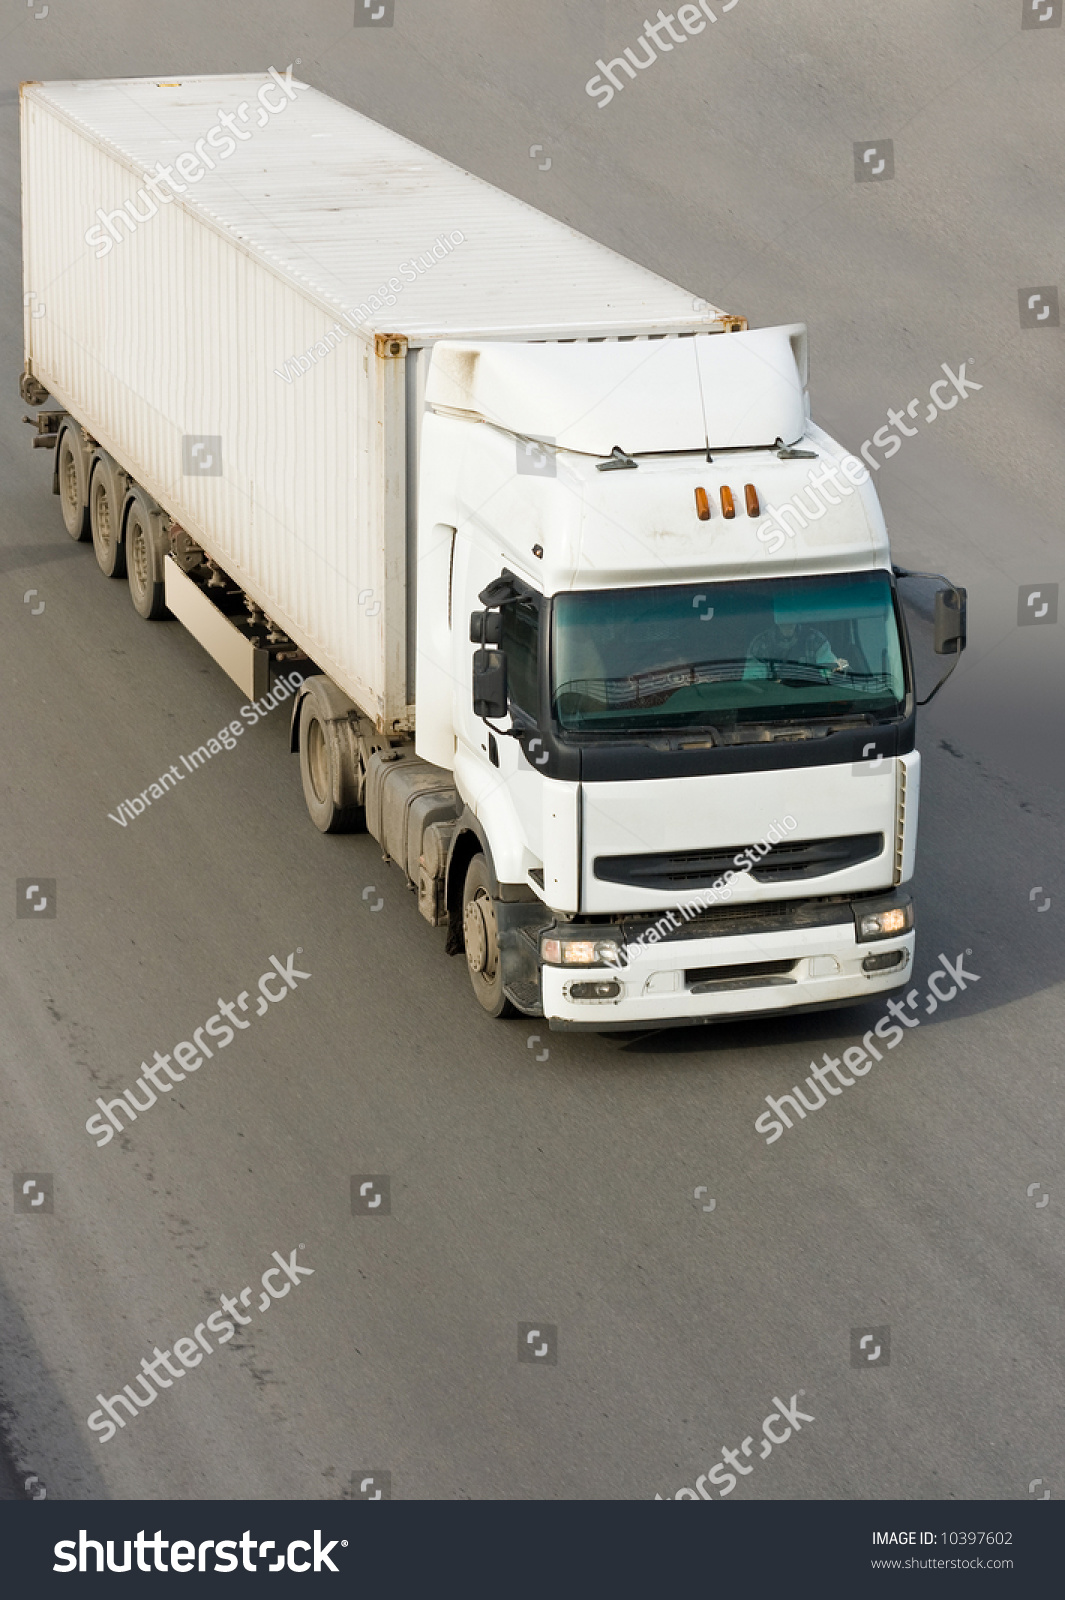 Tractor Trailer Stock : Tractor trailer truck isolated on road stock photo